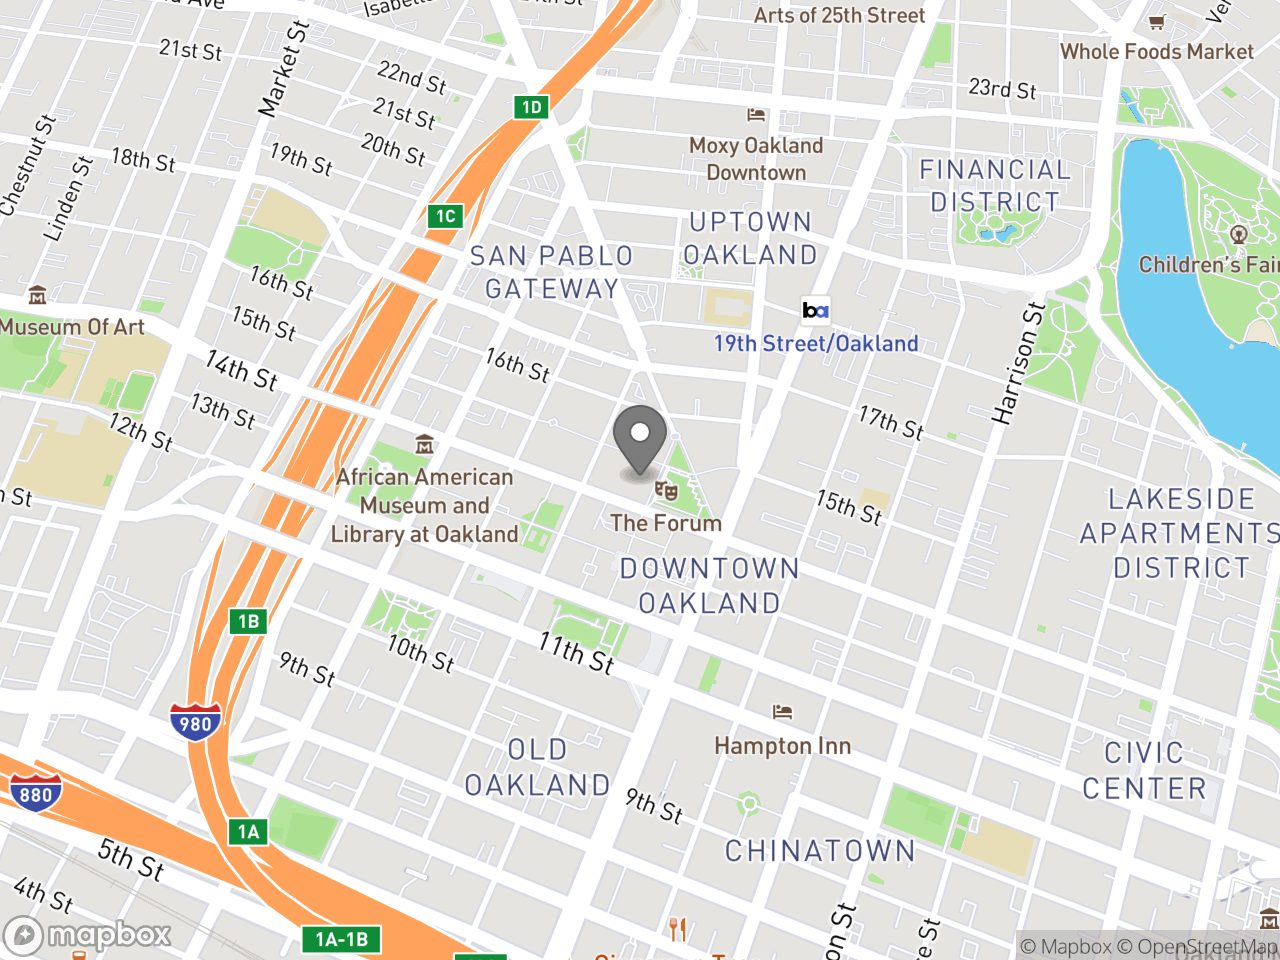 Map image for Alameda County-Oakland Community Action Partnership Administering Board Meeting April 9, 2018, located at 1 Frank H. Ogawa Plaza in Oakland, CA 94612